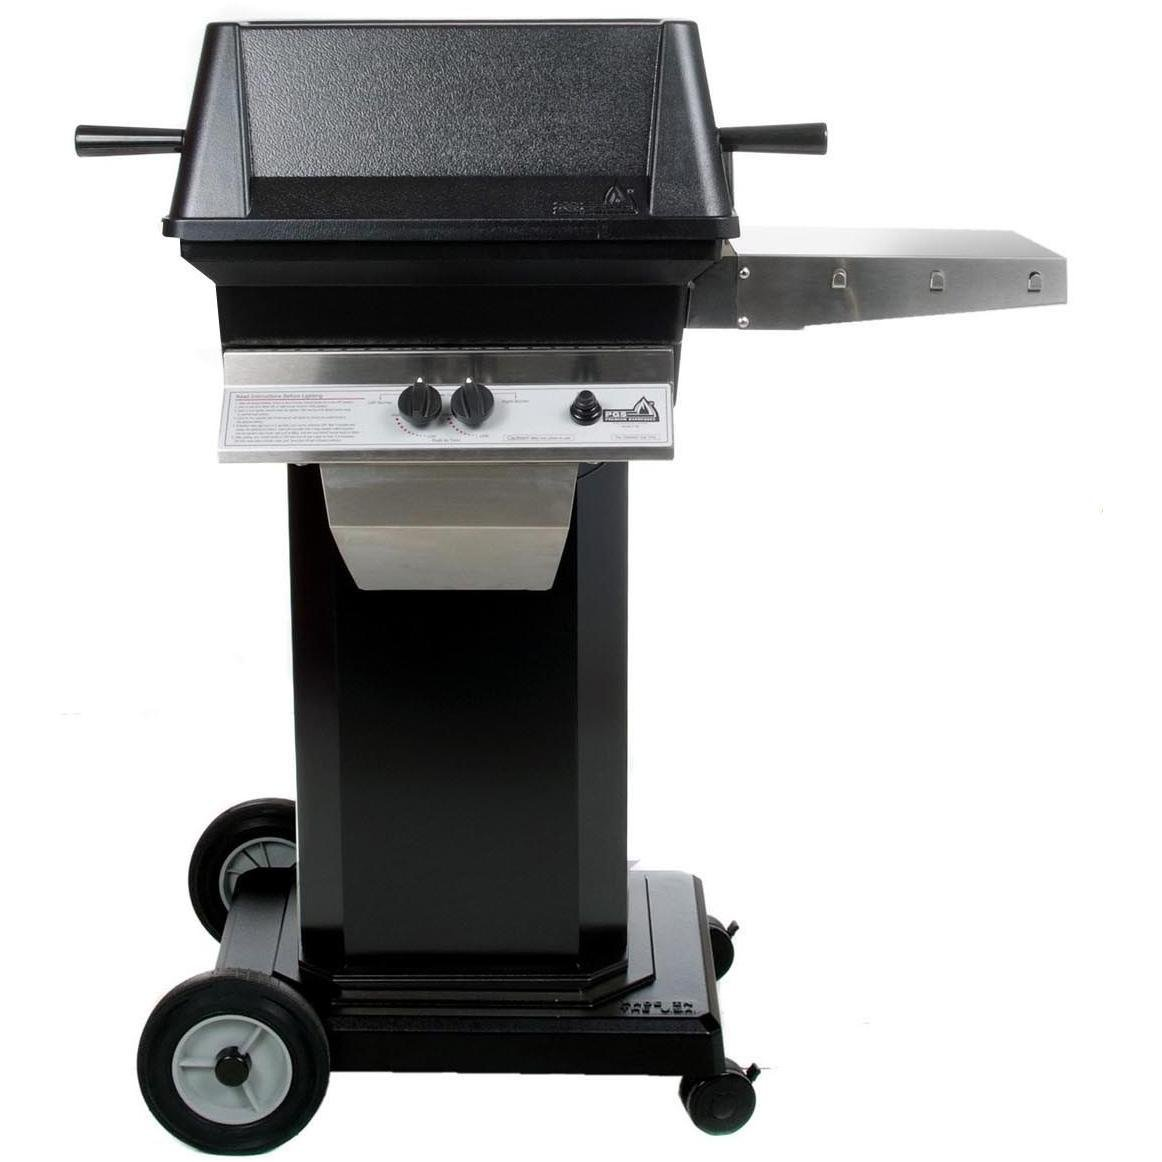 Pgs A30 Cast Aluminum Natural Gas Grill On Black Portable Pedestal Base